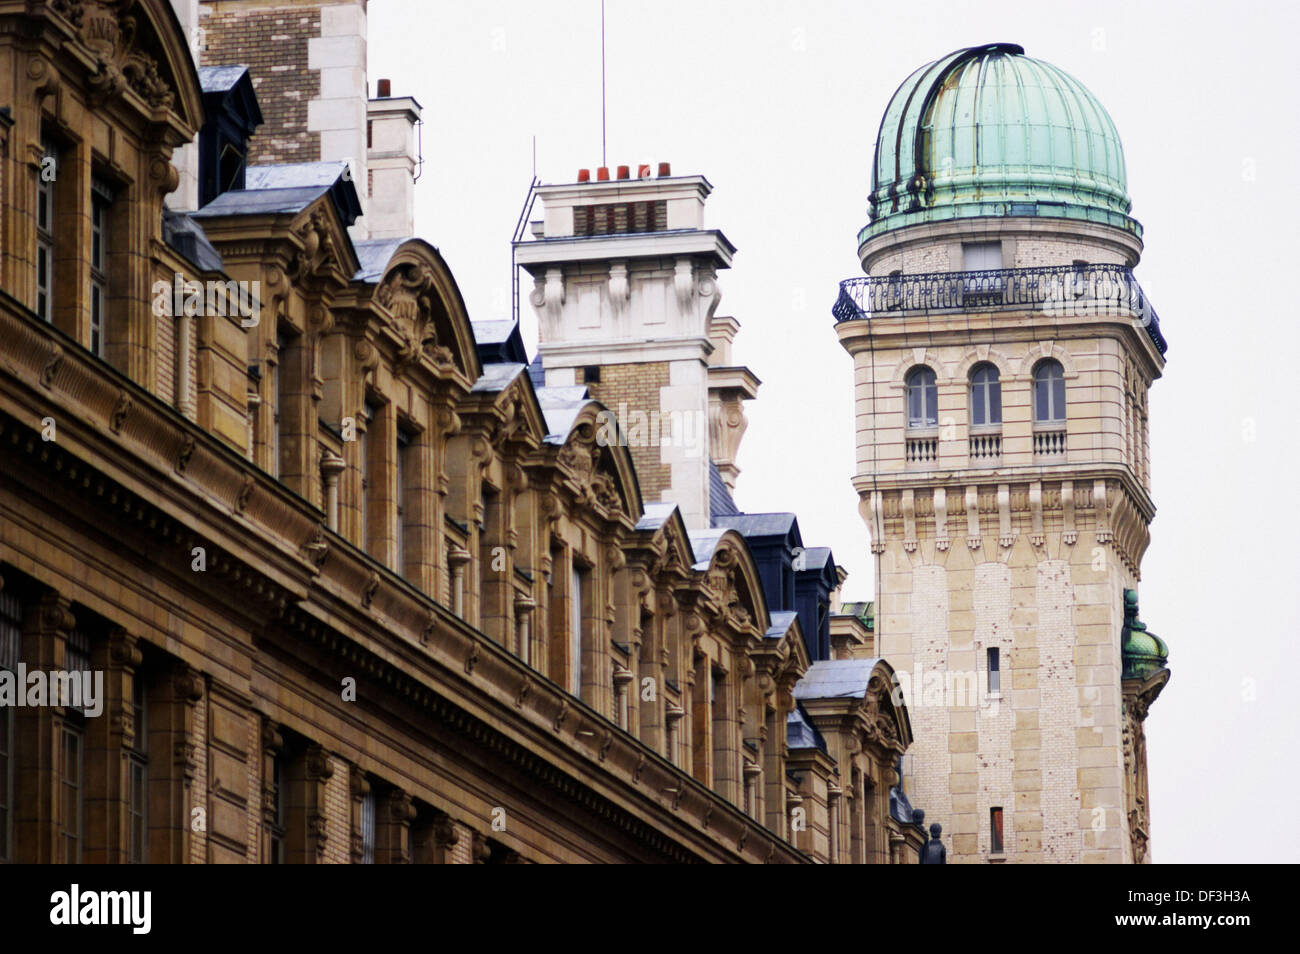 Tower with Observatory at the Sorbonne University. Paris. France - Stock Image